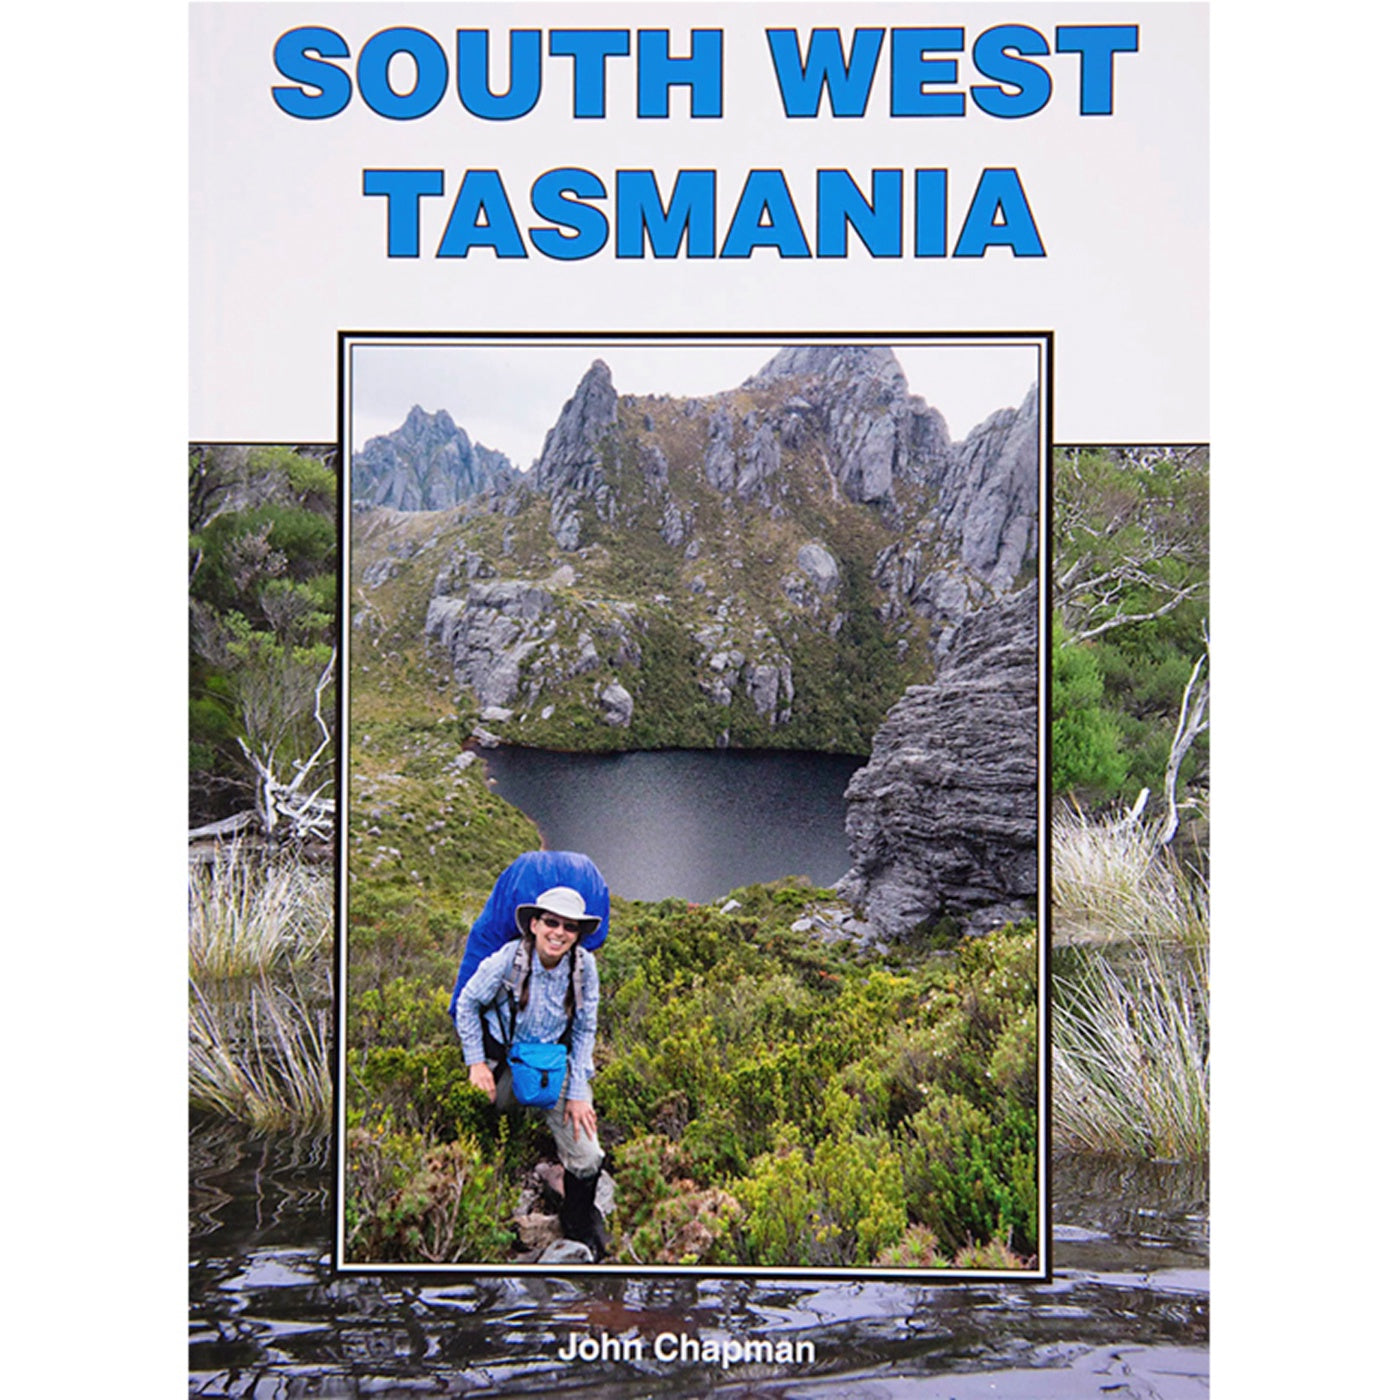 South West Tasmania